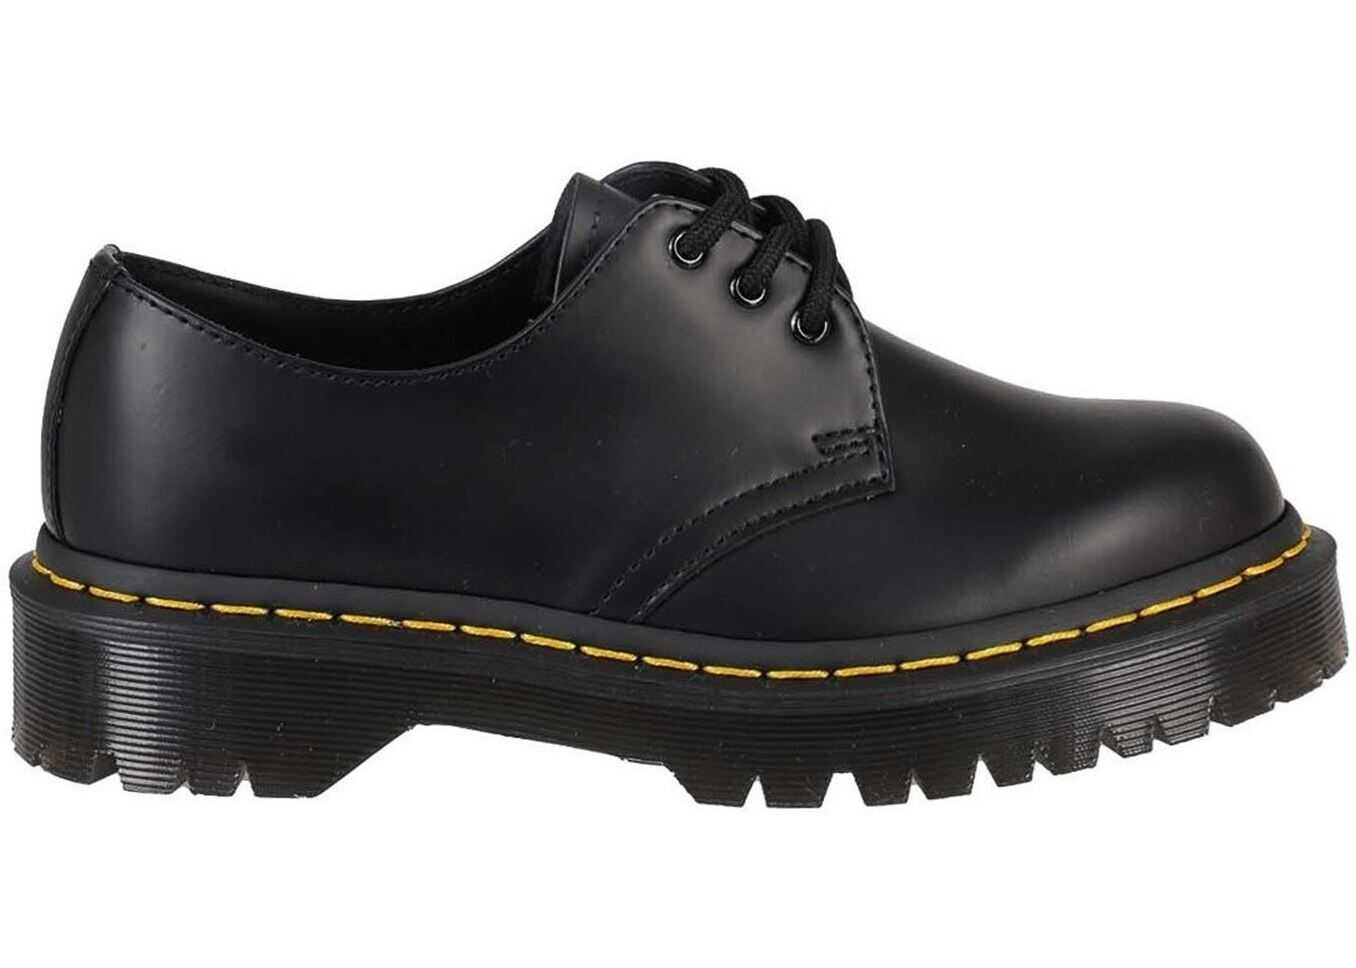 Dr. Martens 1461 Bex Smooth Lace-Ups In Black 21084001 Black imagine b-mall.ro